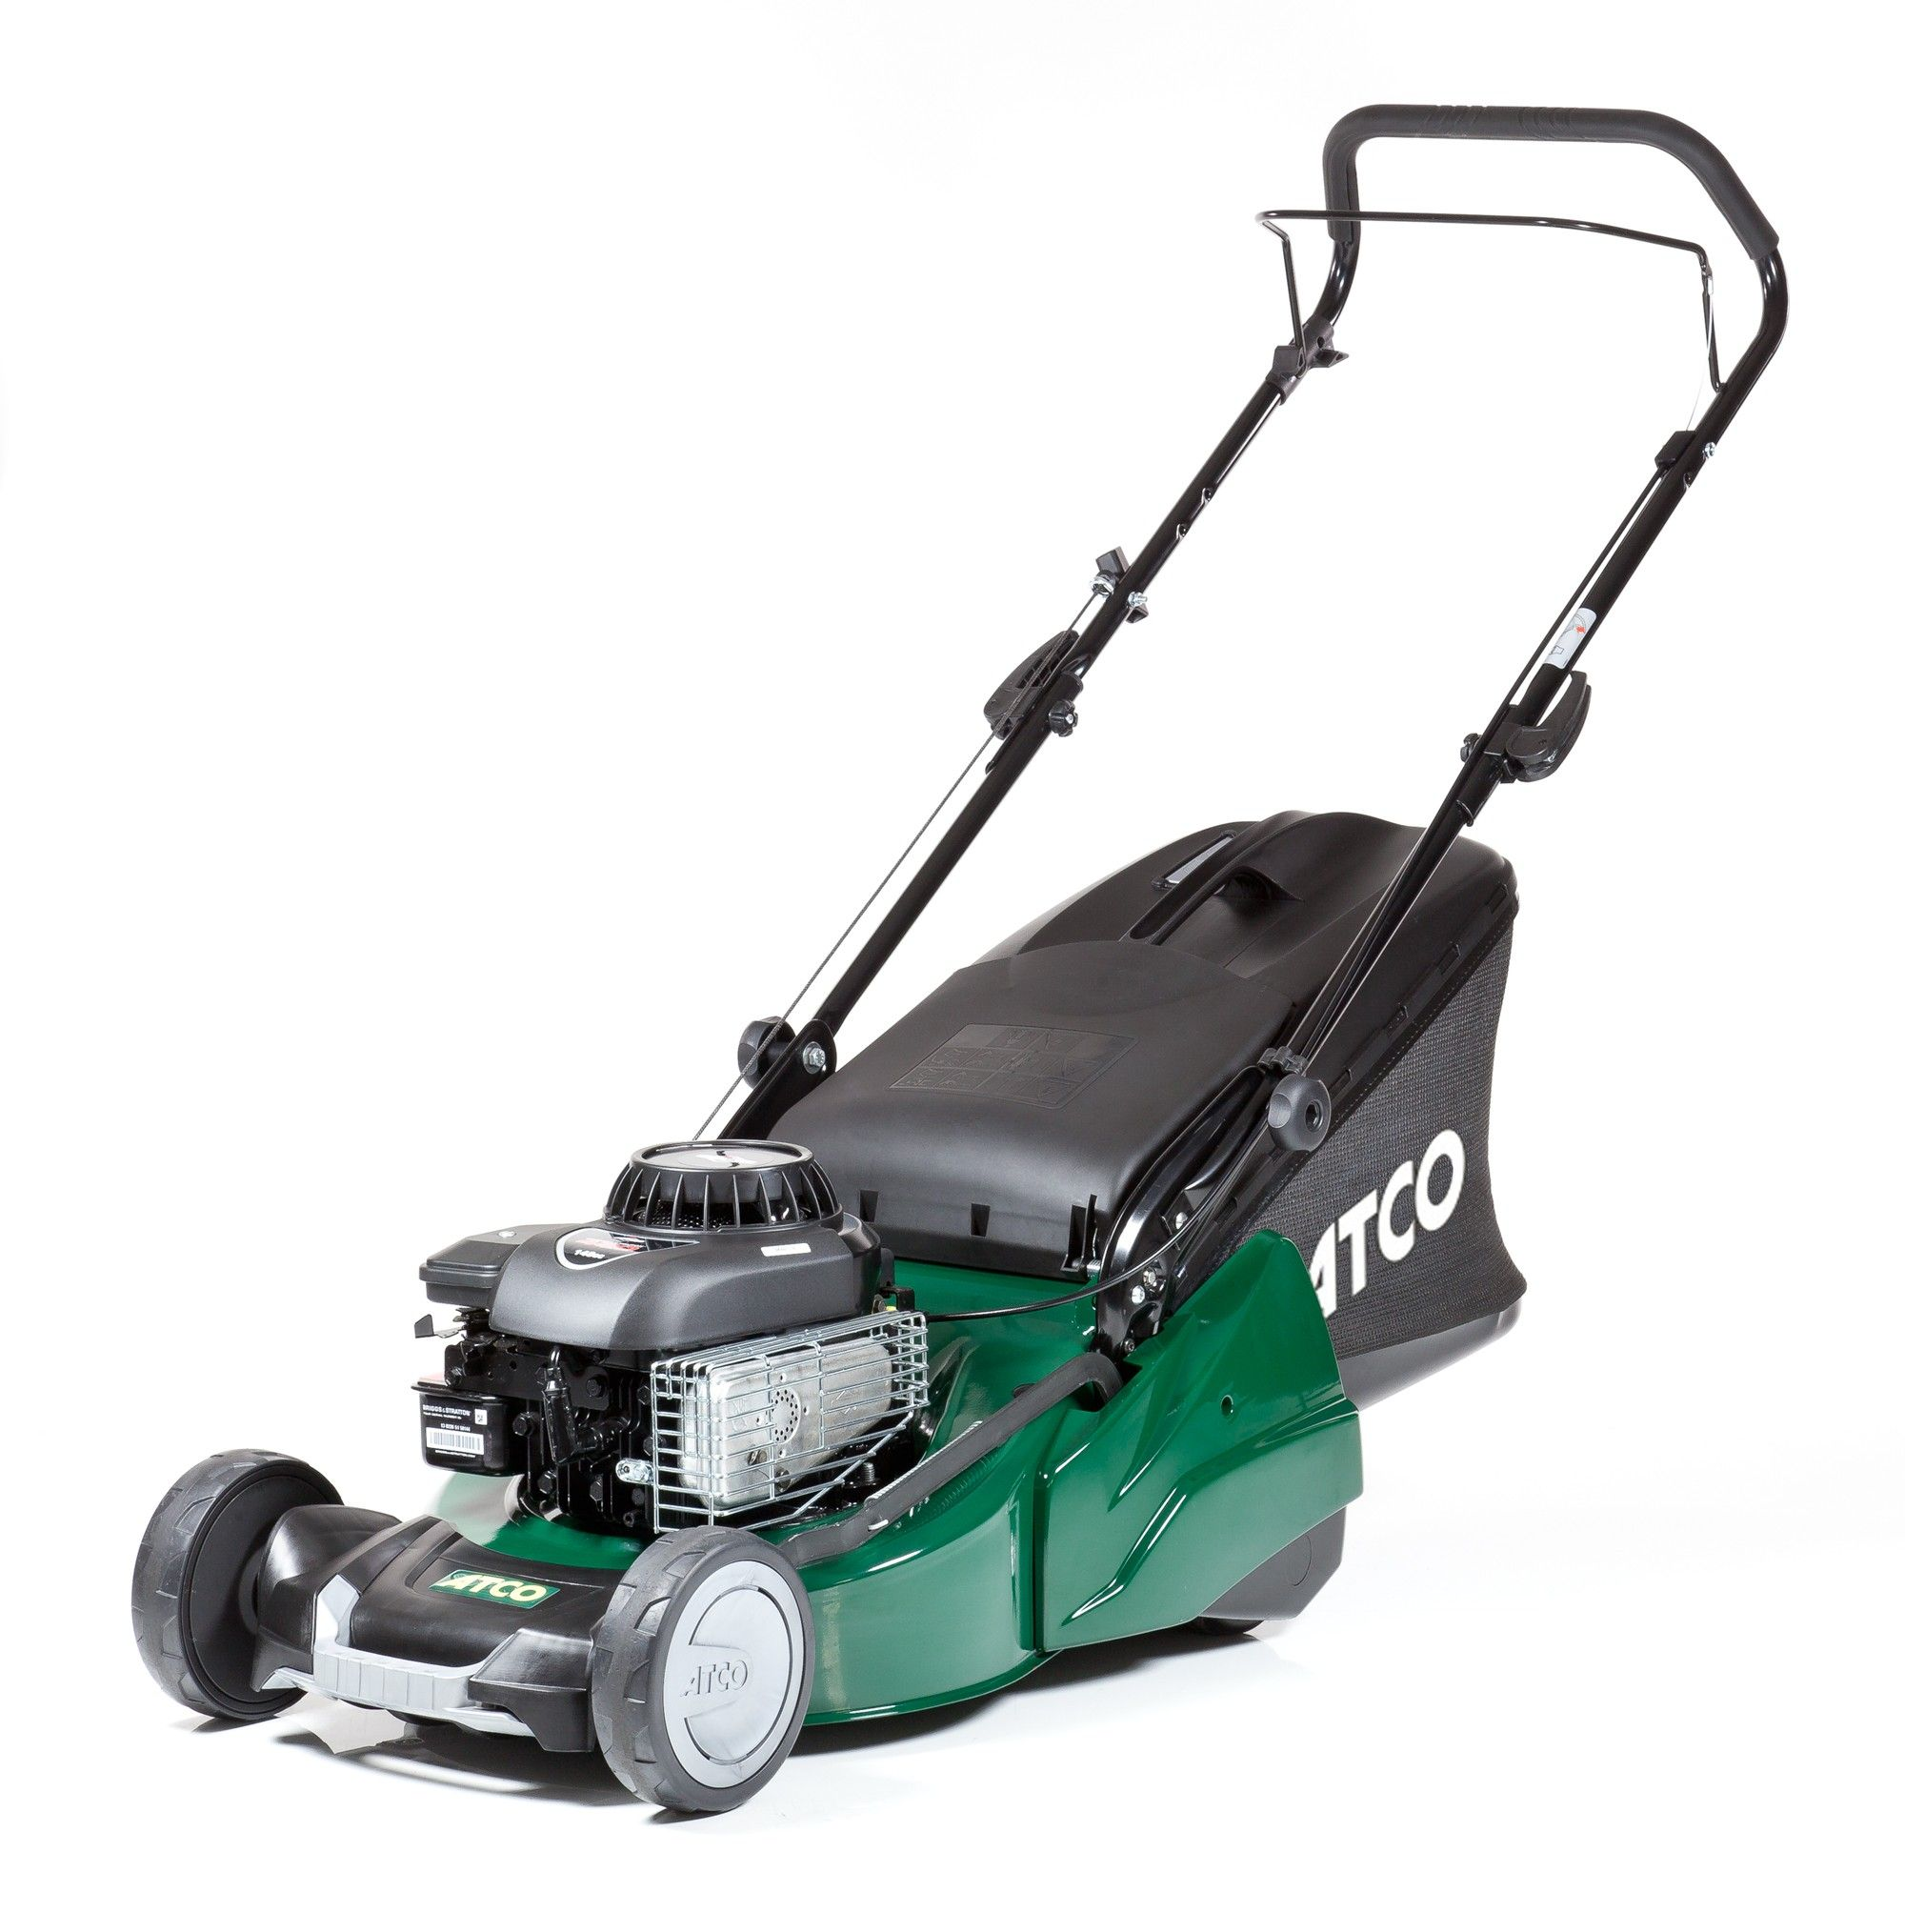 atco liner 16 petrol lawnmower. Black Bedroom Furniture Sets. Home Design Ideas